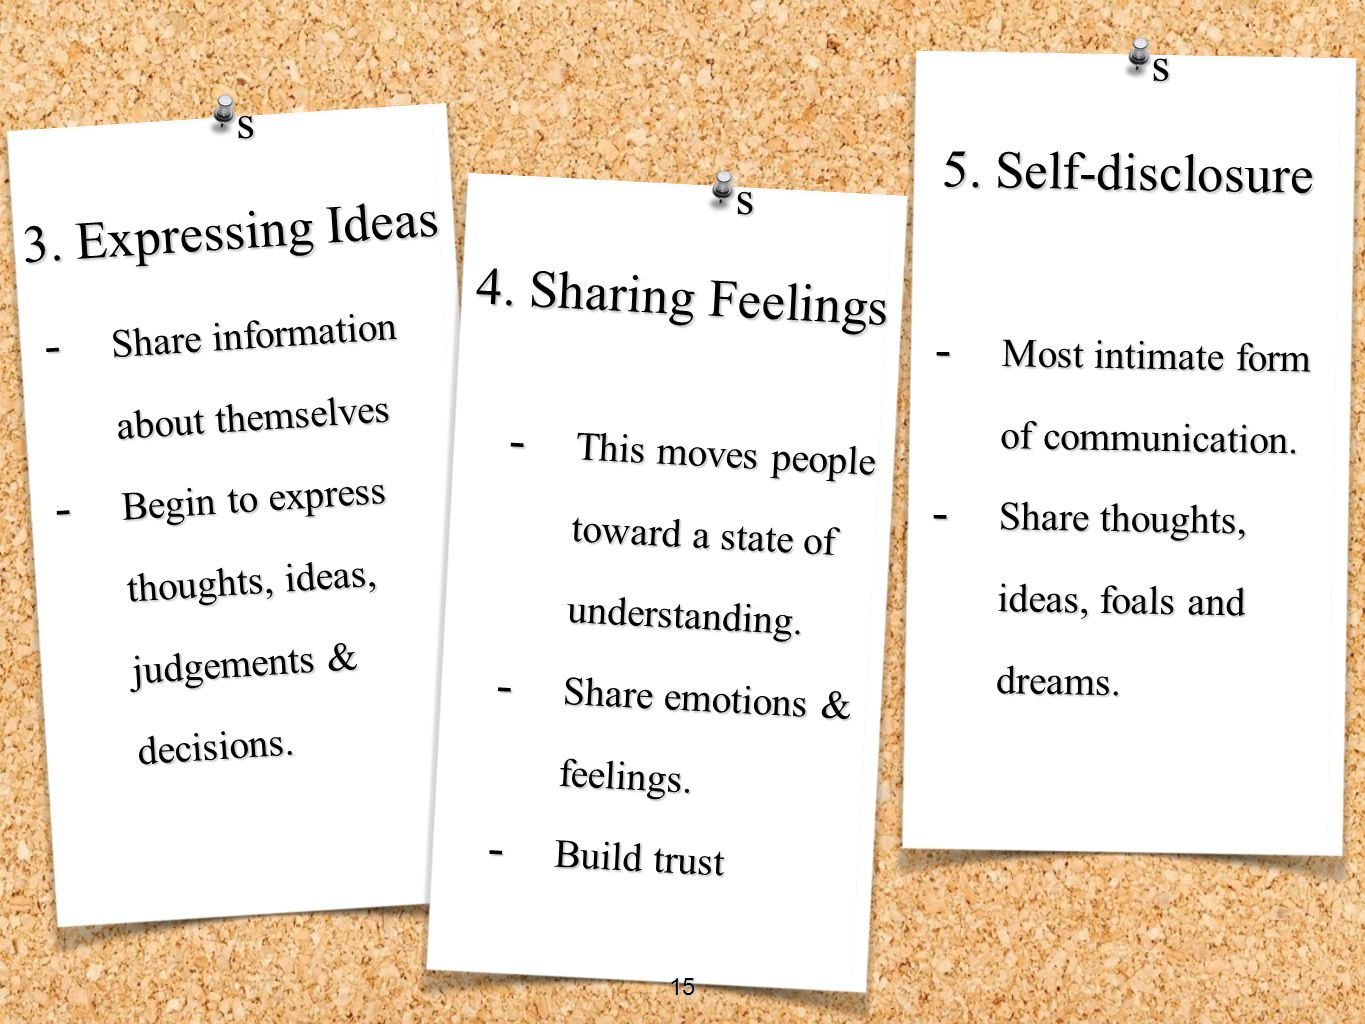 5. Self-disclosure 3. Expressing Ideas 4. Sharing Feelings s s s